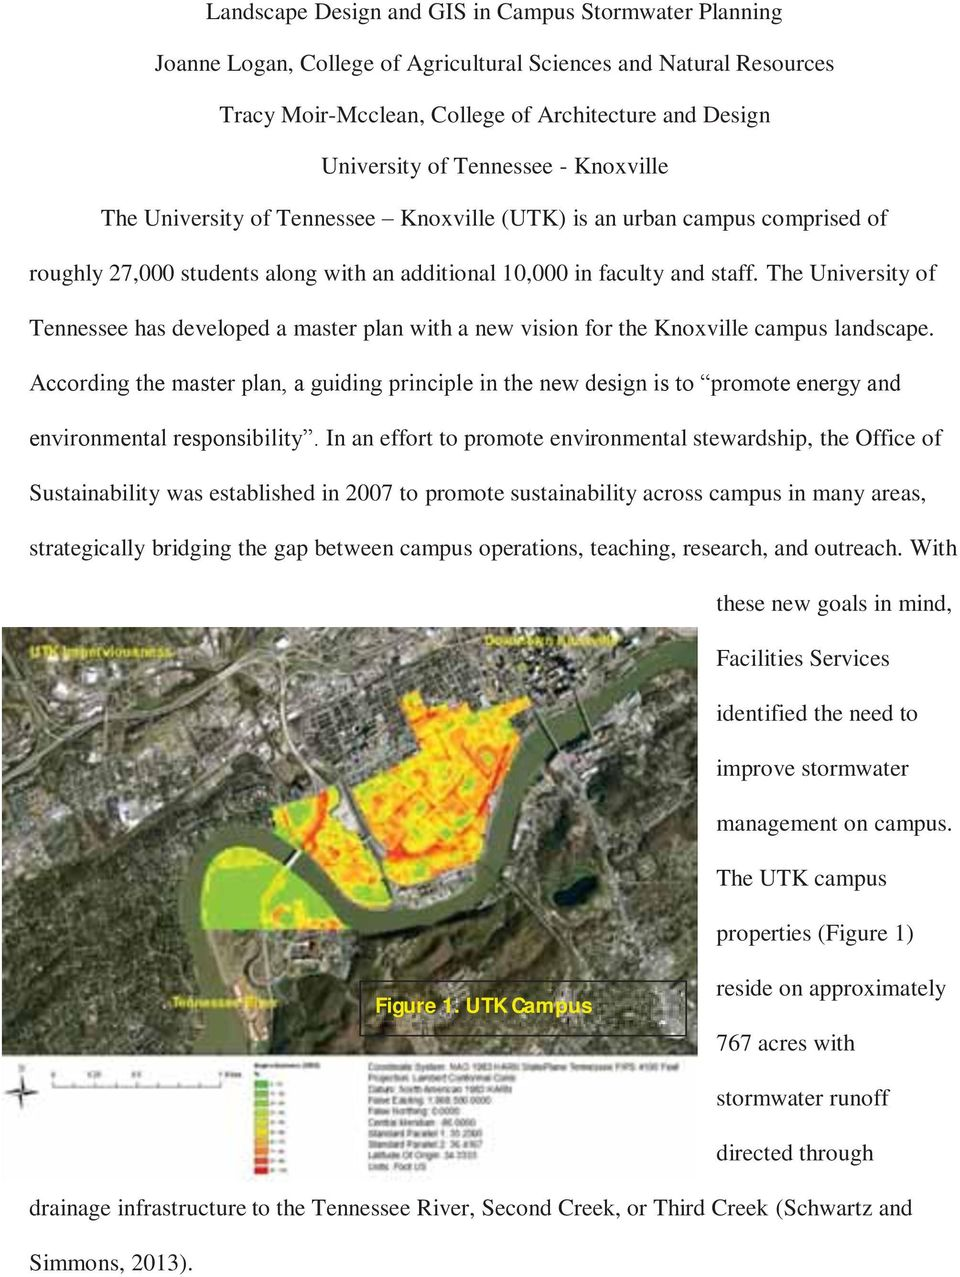 The University of Tennessee has developed a master plan with a new vision for the Knoxville campus landscape.